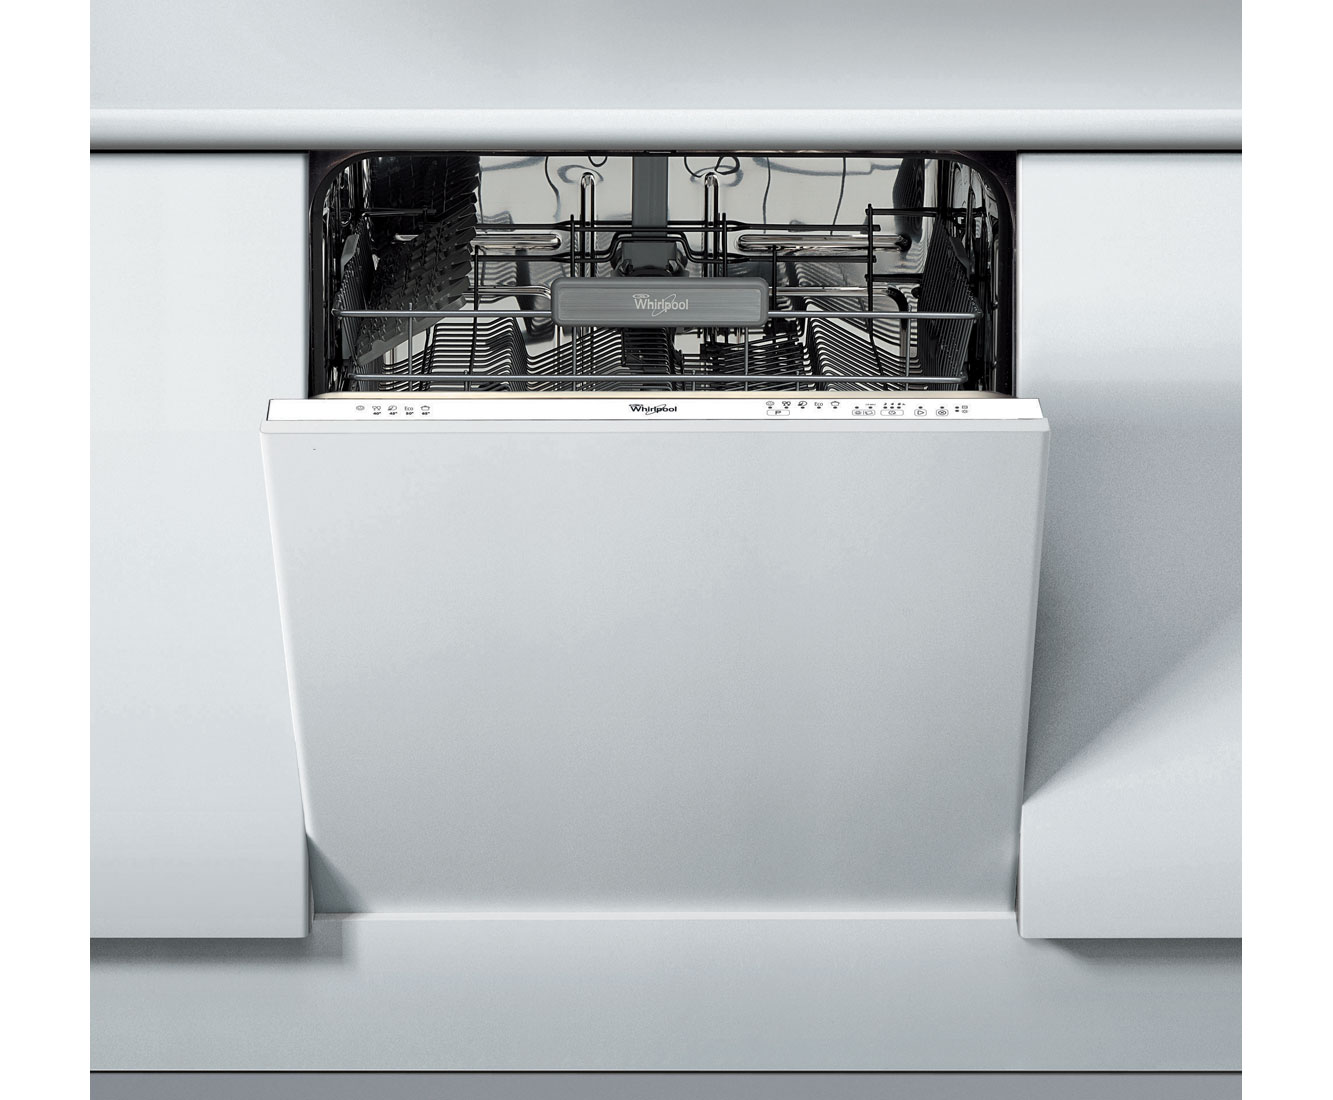 Whirlpool ADG100 Fully Integrated Standard Dishwasher - Silver